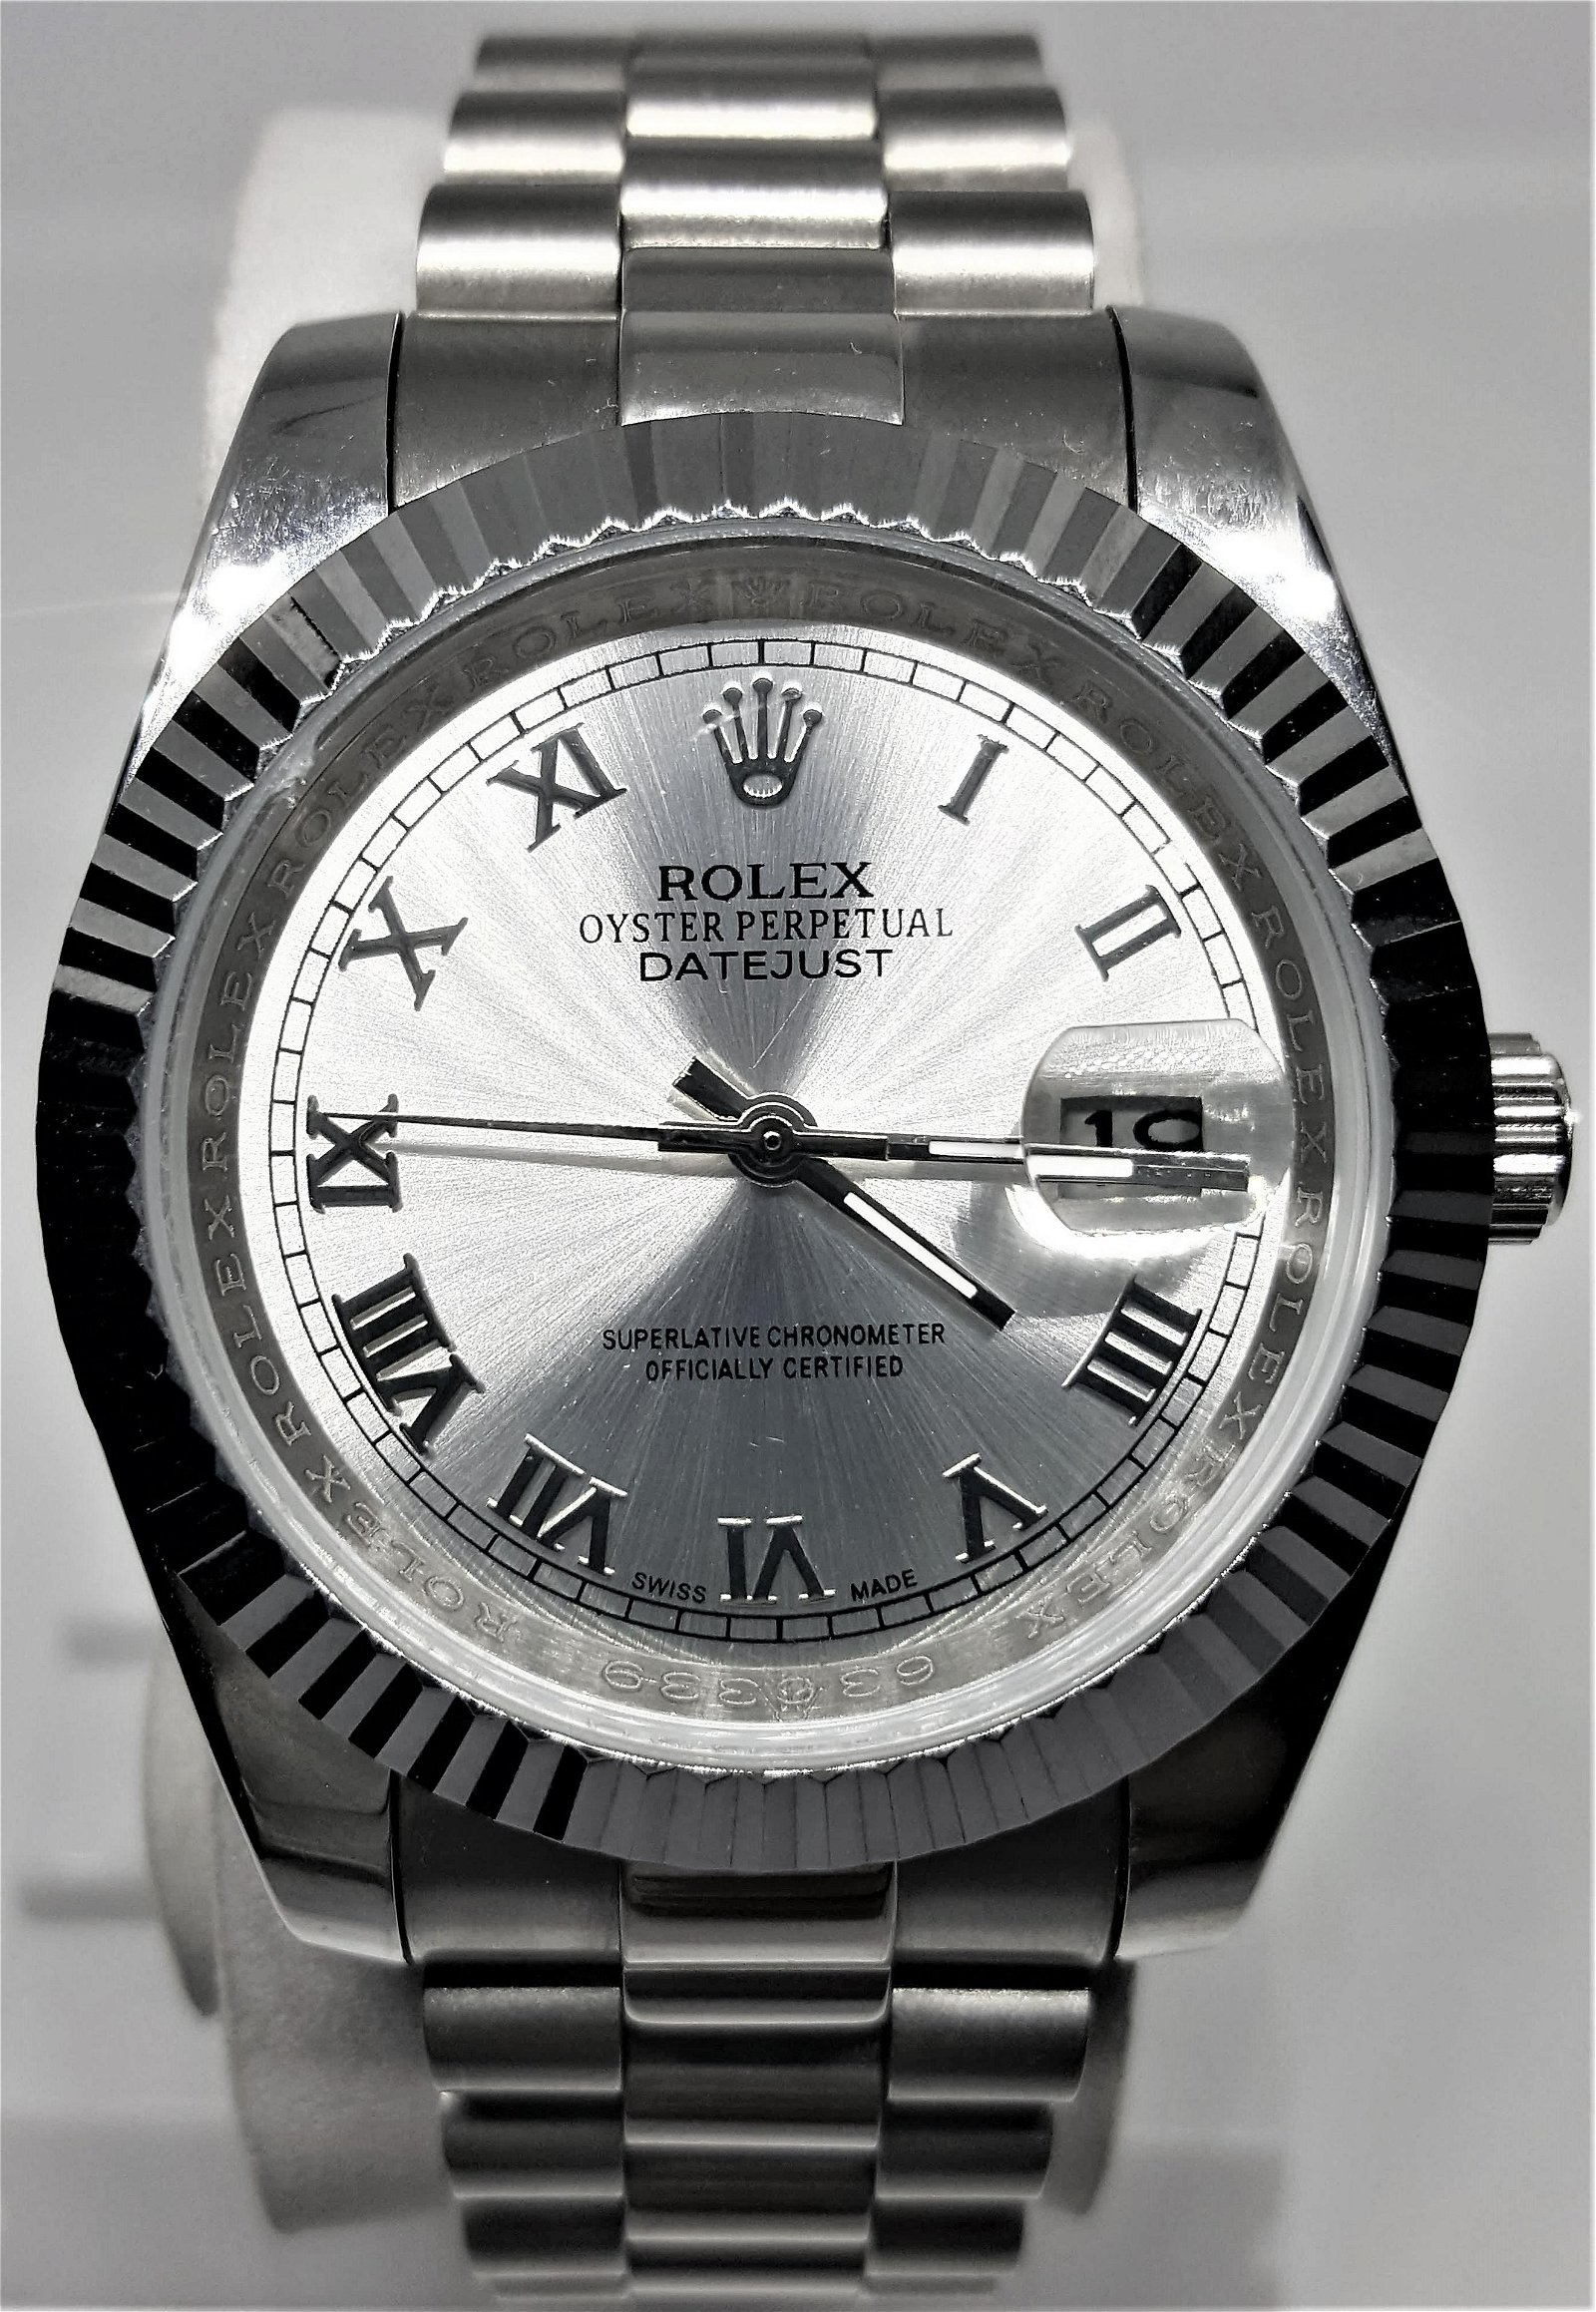 Rolex Oyster Perpetual DATEJUST Automatic Watch